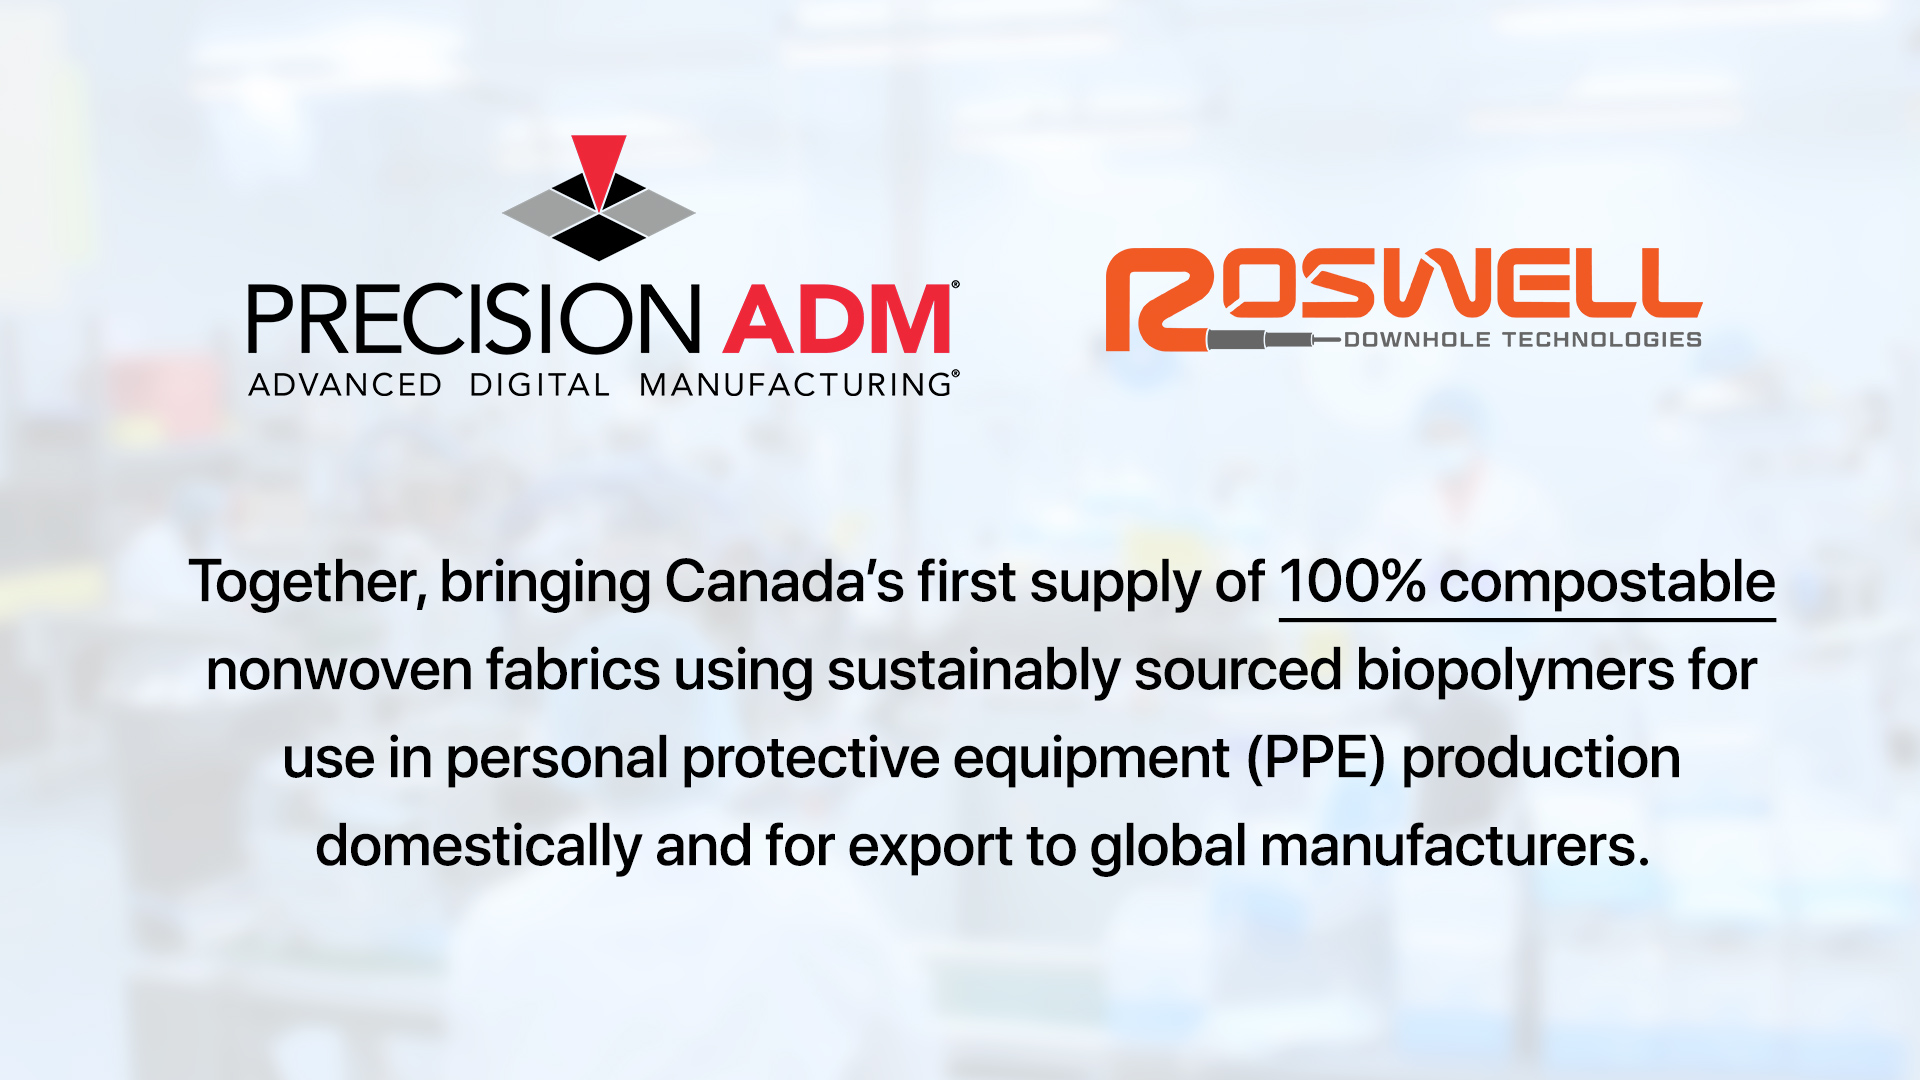 Precision ADM Acquires Roswell Downhole Technologies to Manufacture Canada's First Supply of 100% Compostable Fabrics for PPE and Reduce Canada's GHG Emissions